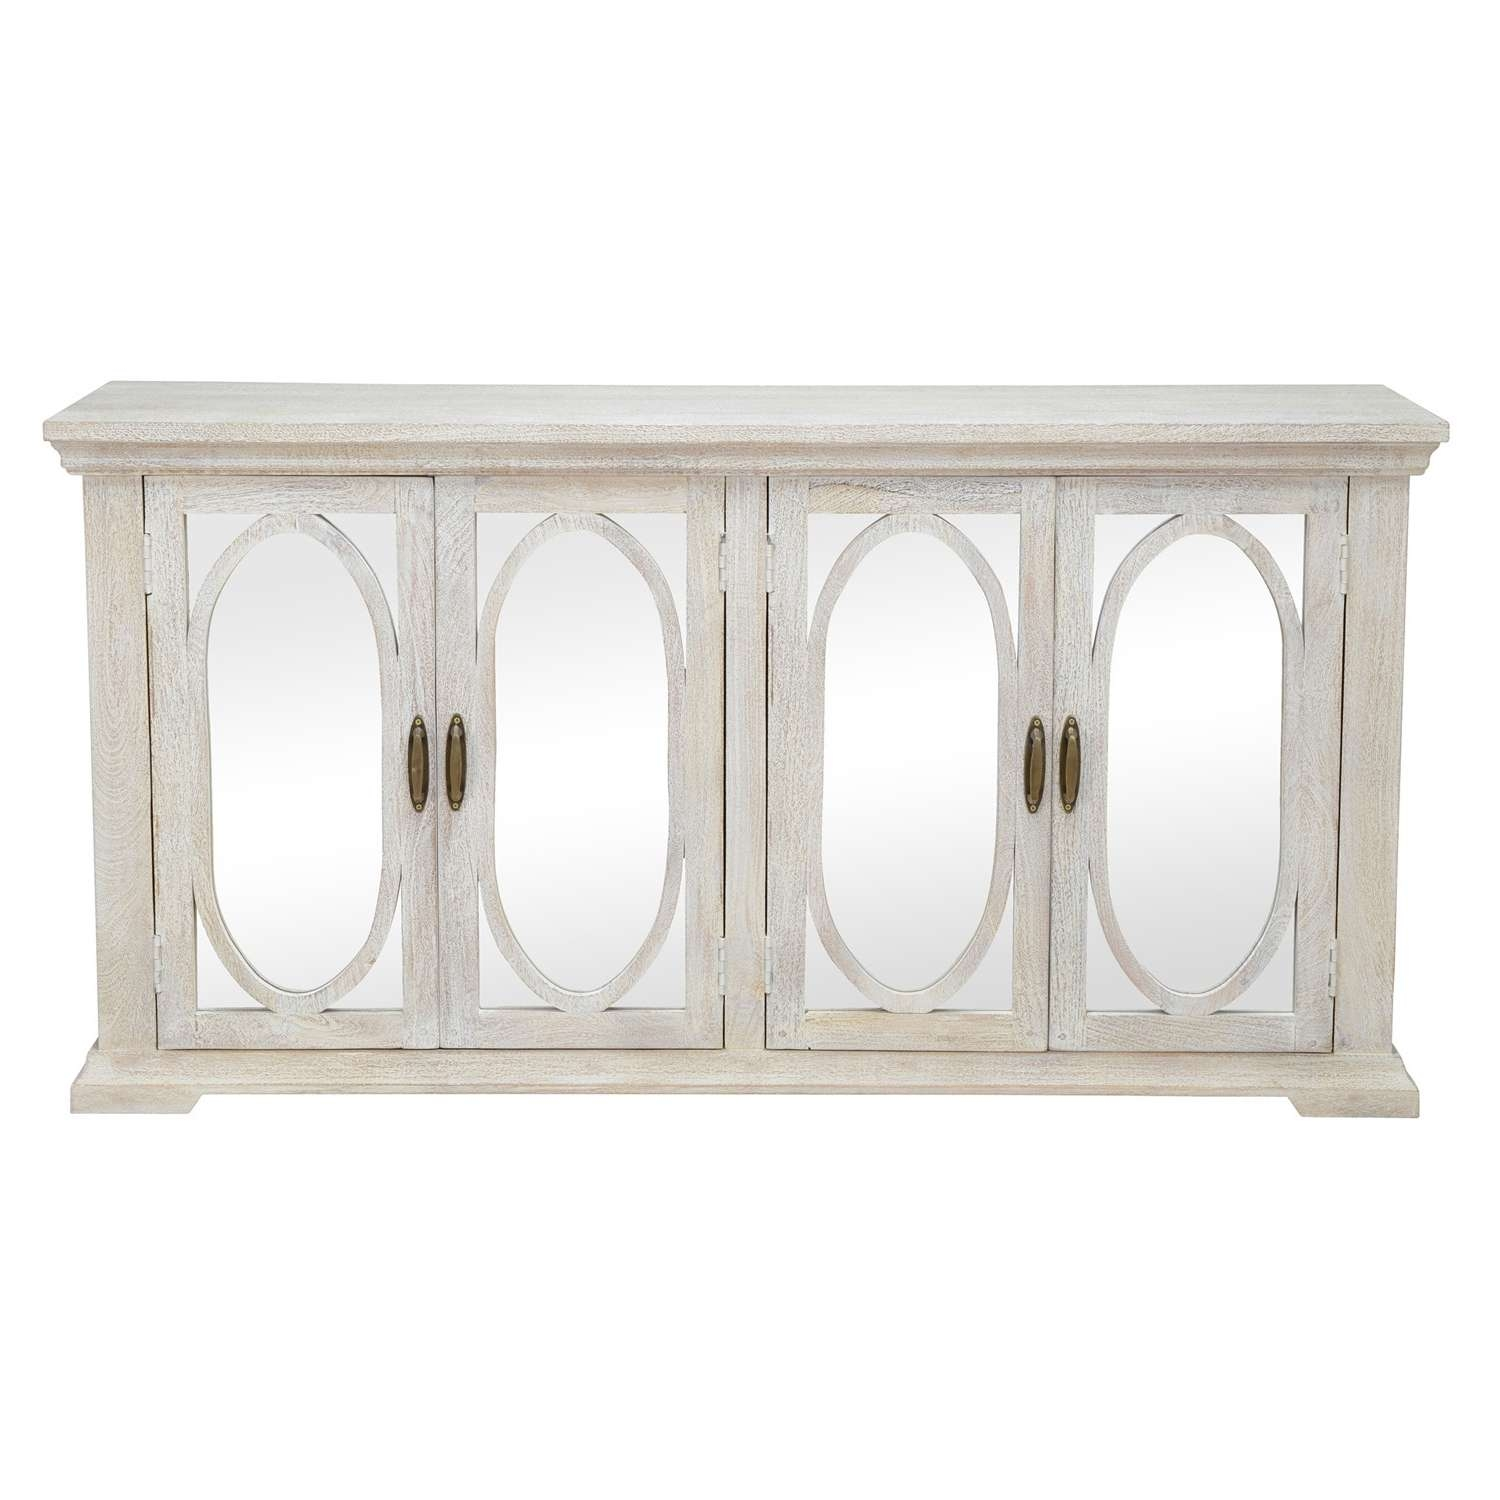 Manchester Wood Mirrored 70 Inch Sideboardkosas Home – Free With 70 Inch Sideboards (View 8 of 20)